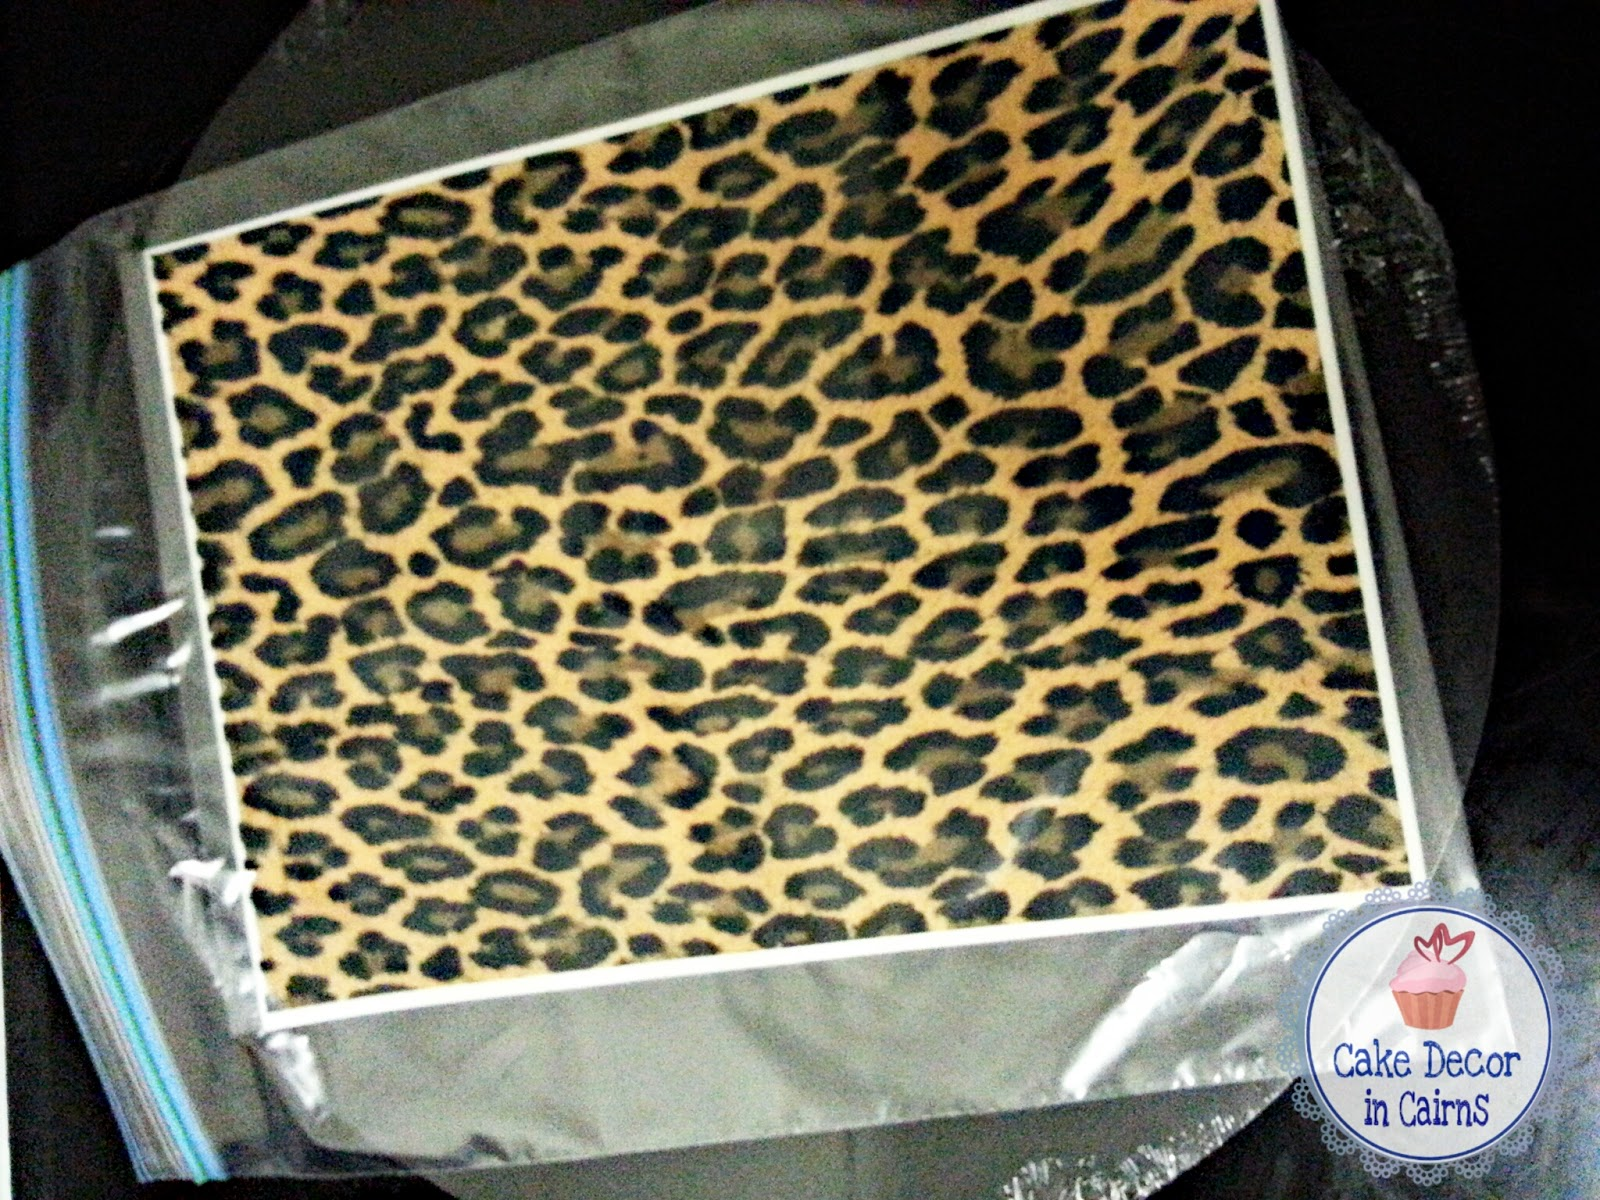 Edible Leopard Print icing sheet to stick on ganache instead of chocolate hand painting.